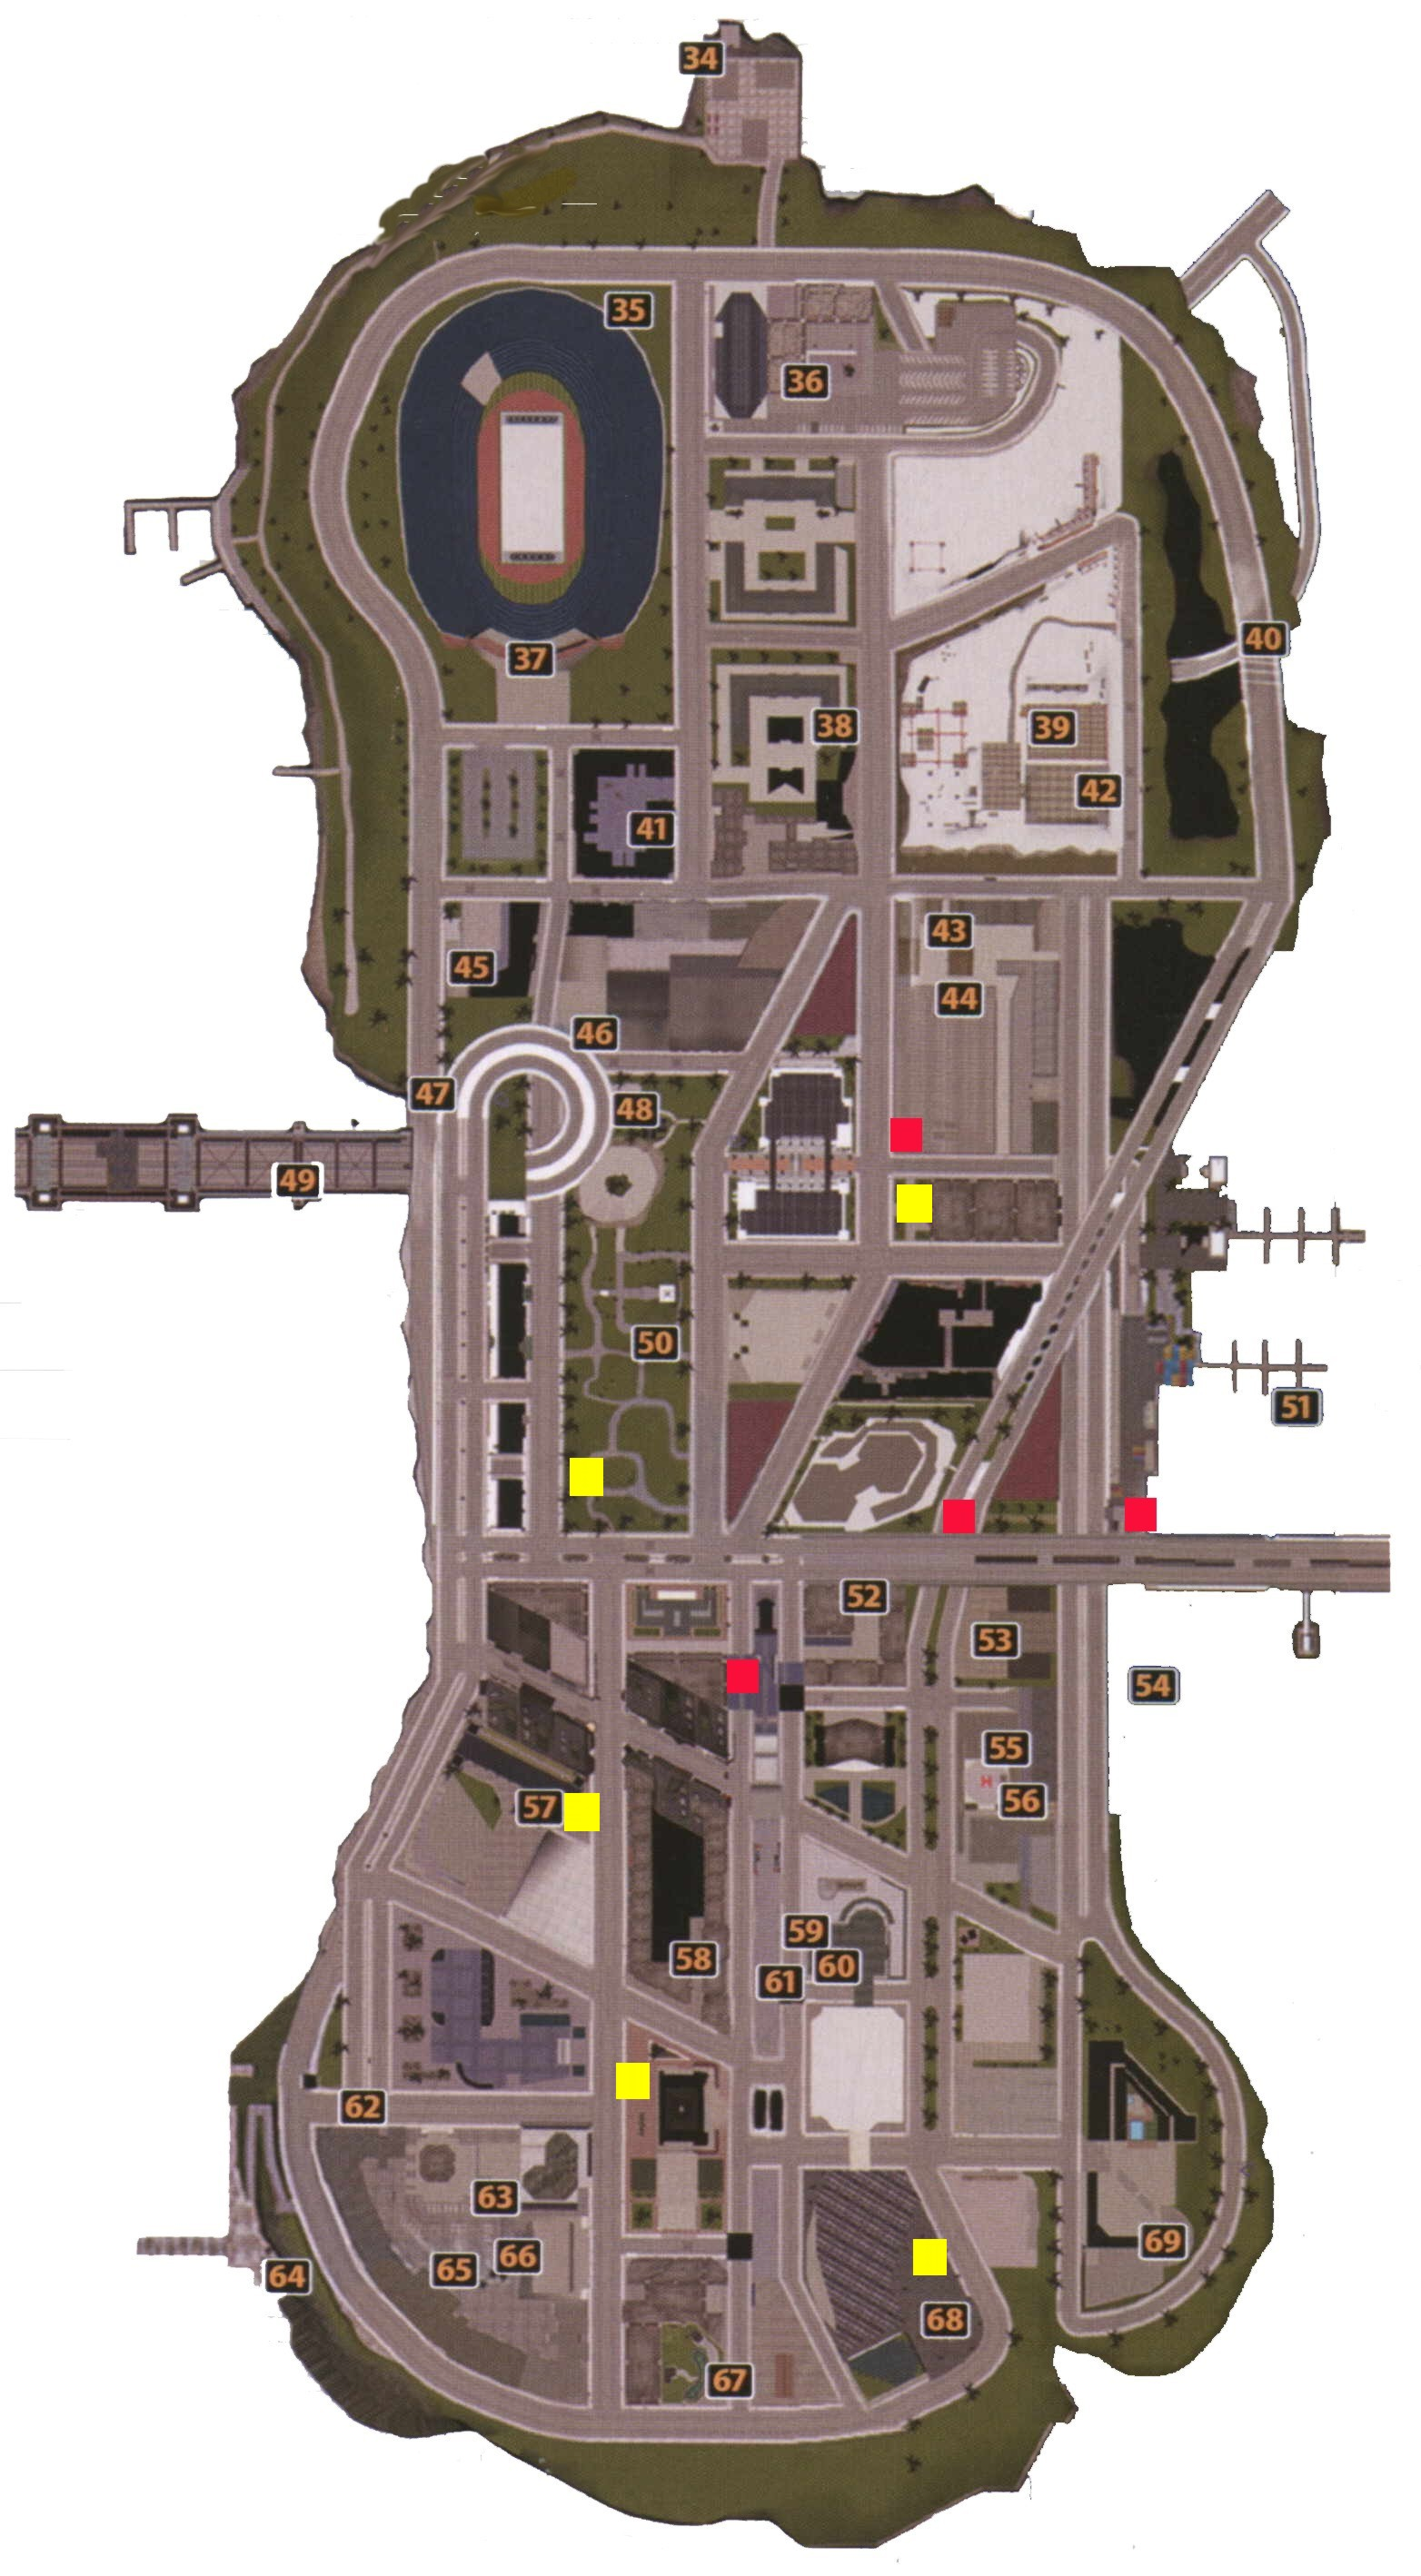 san andreas map size with Content on File HIGH RES GTA 3 GHOST TOWN as well 26898 Hd Dorogi V20 Final also File V tbd 1920x1080 besides File Taxi GTA4 Declasse Rear as well Watch.